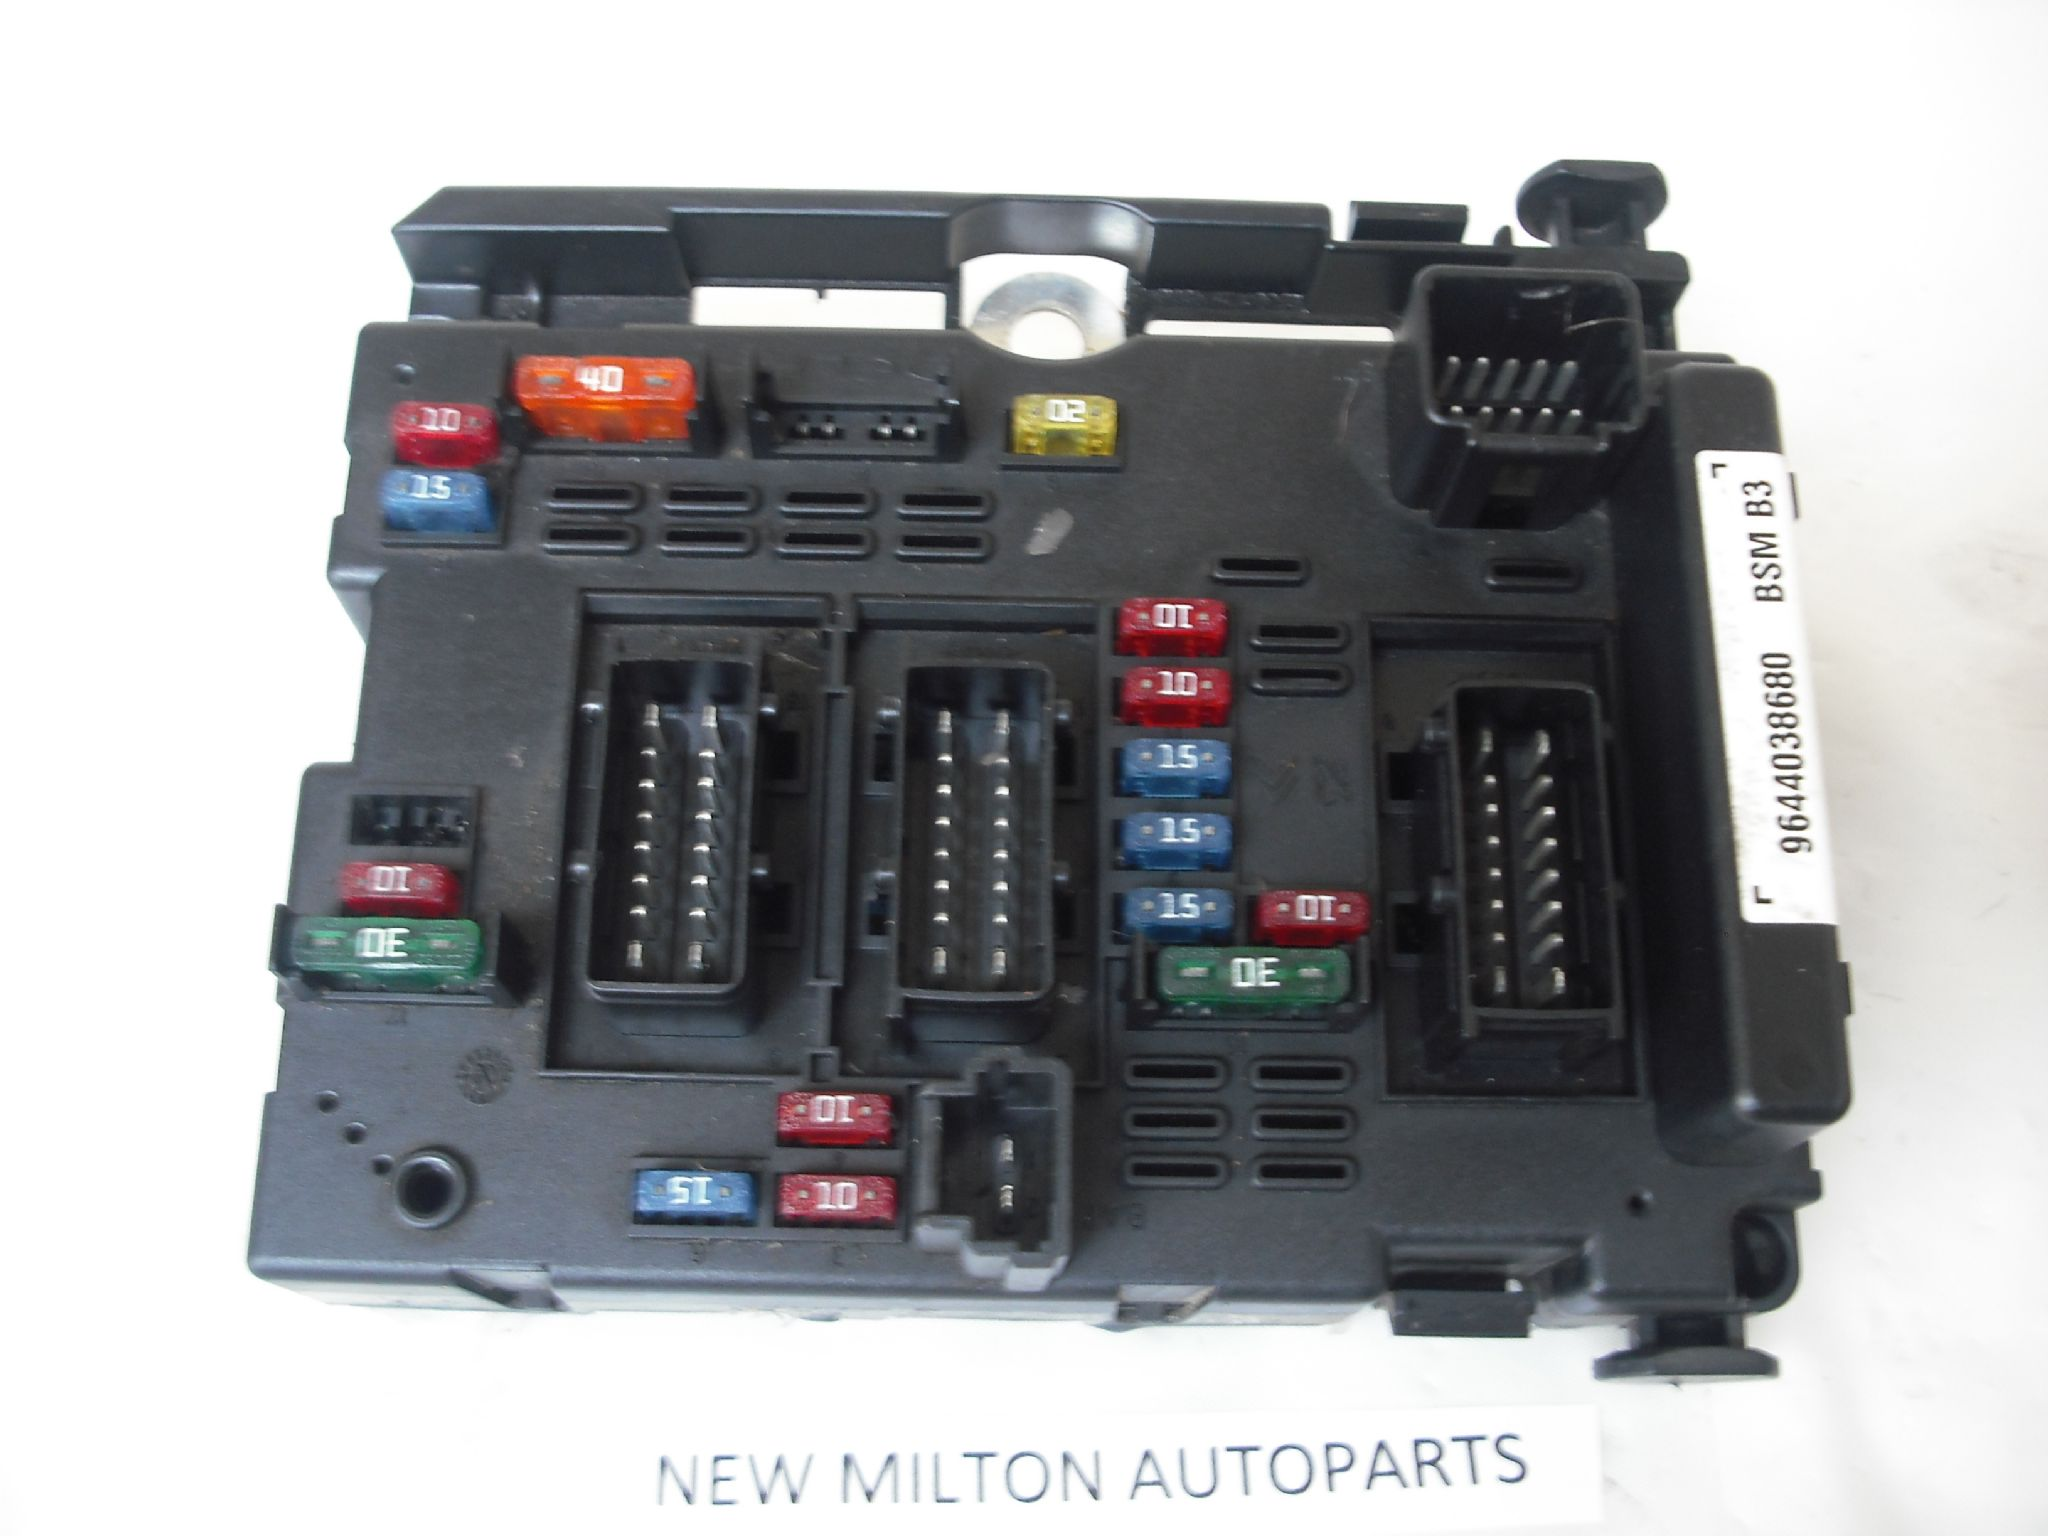 peugeot 307 partner citroen berlingo fuse box controller 9644038680 bsm b3 ........................sorry out of stock 5843 p peugeot 307 partner citroen berlingo fuse box controller citroen berlingo 2012 fuse box at soozxer.org